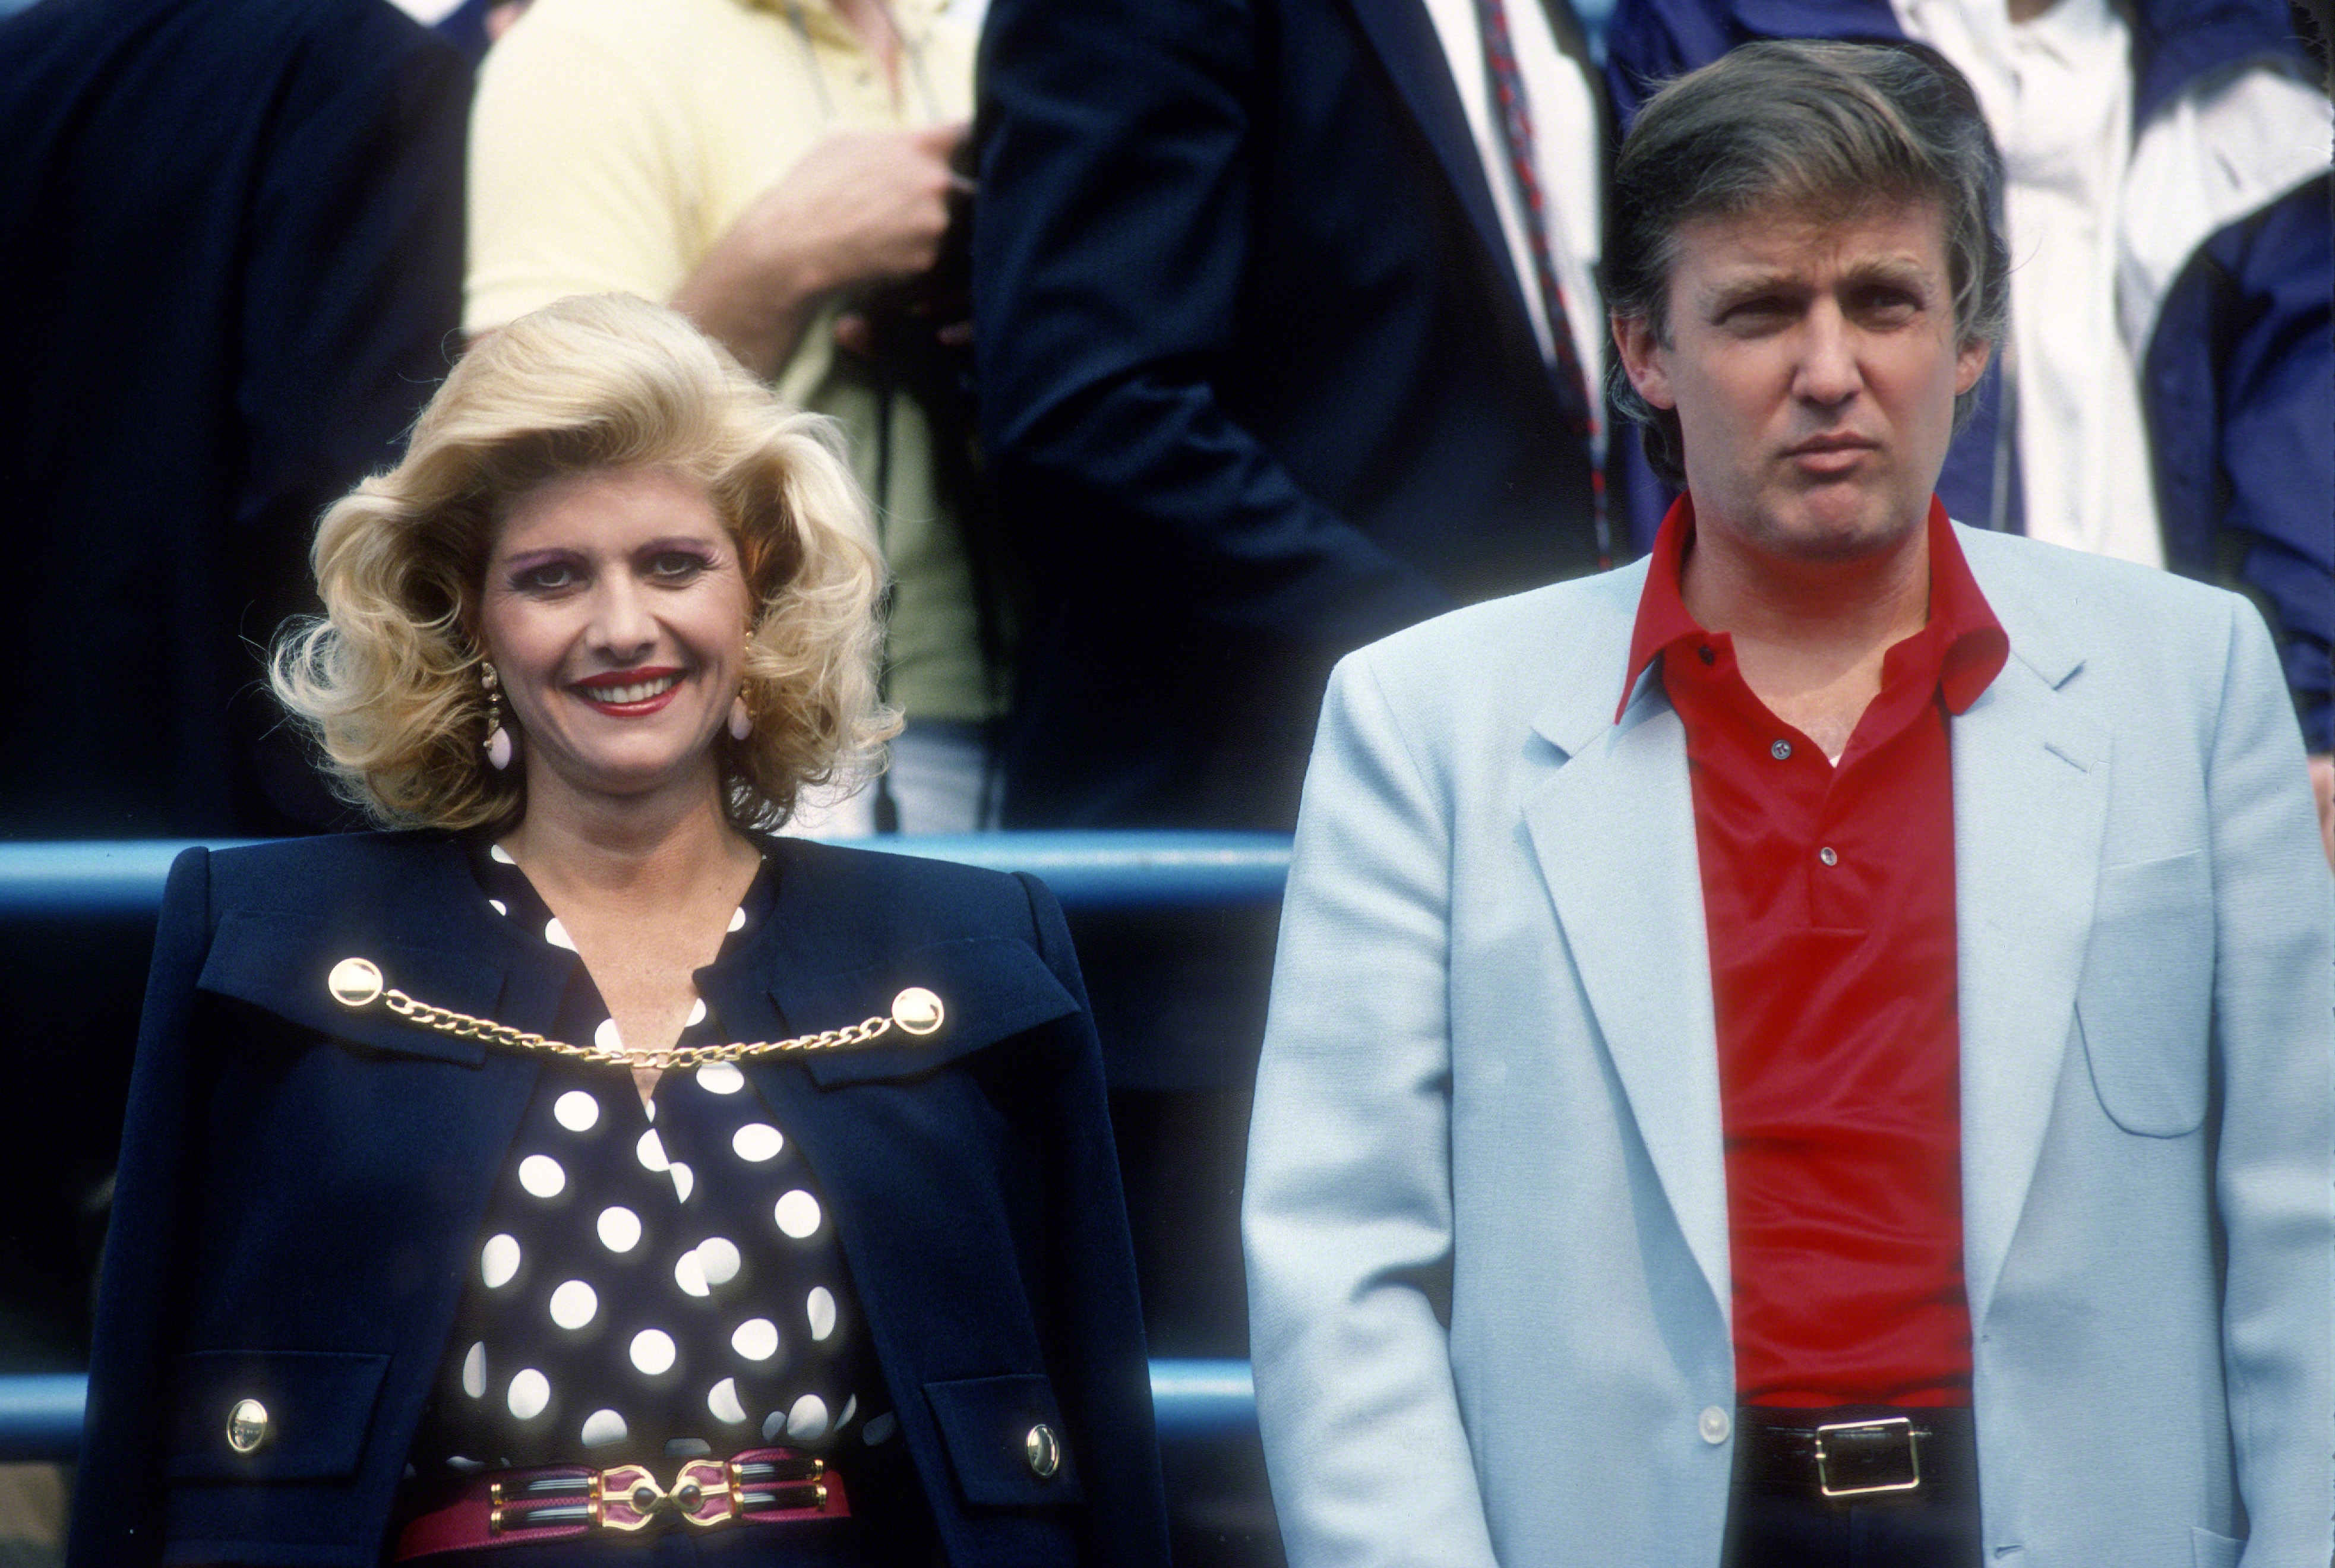 Ivana Trump and Donald Trump attend the U.S. Open Tennis Tournament circa 1988.